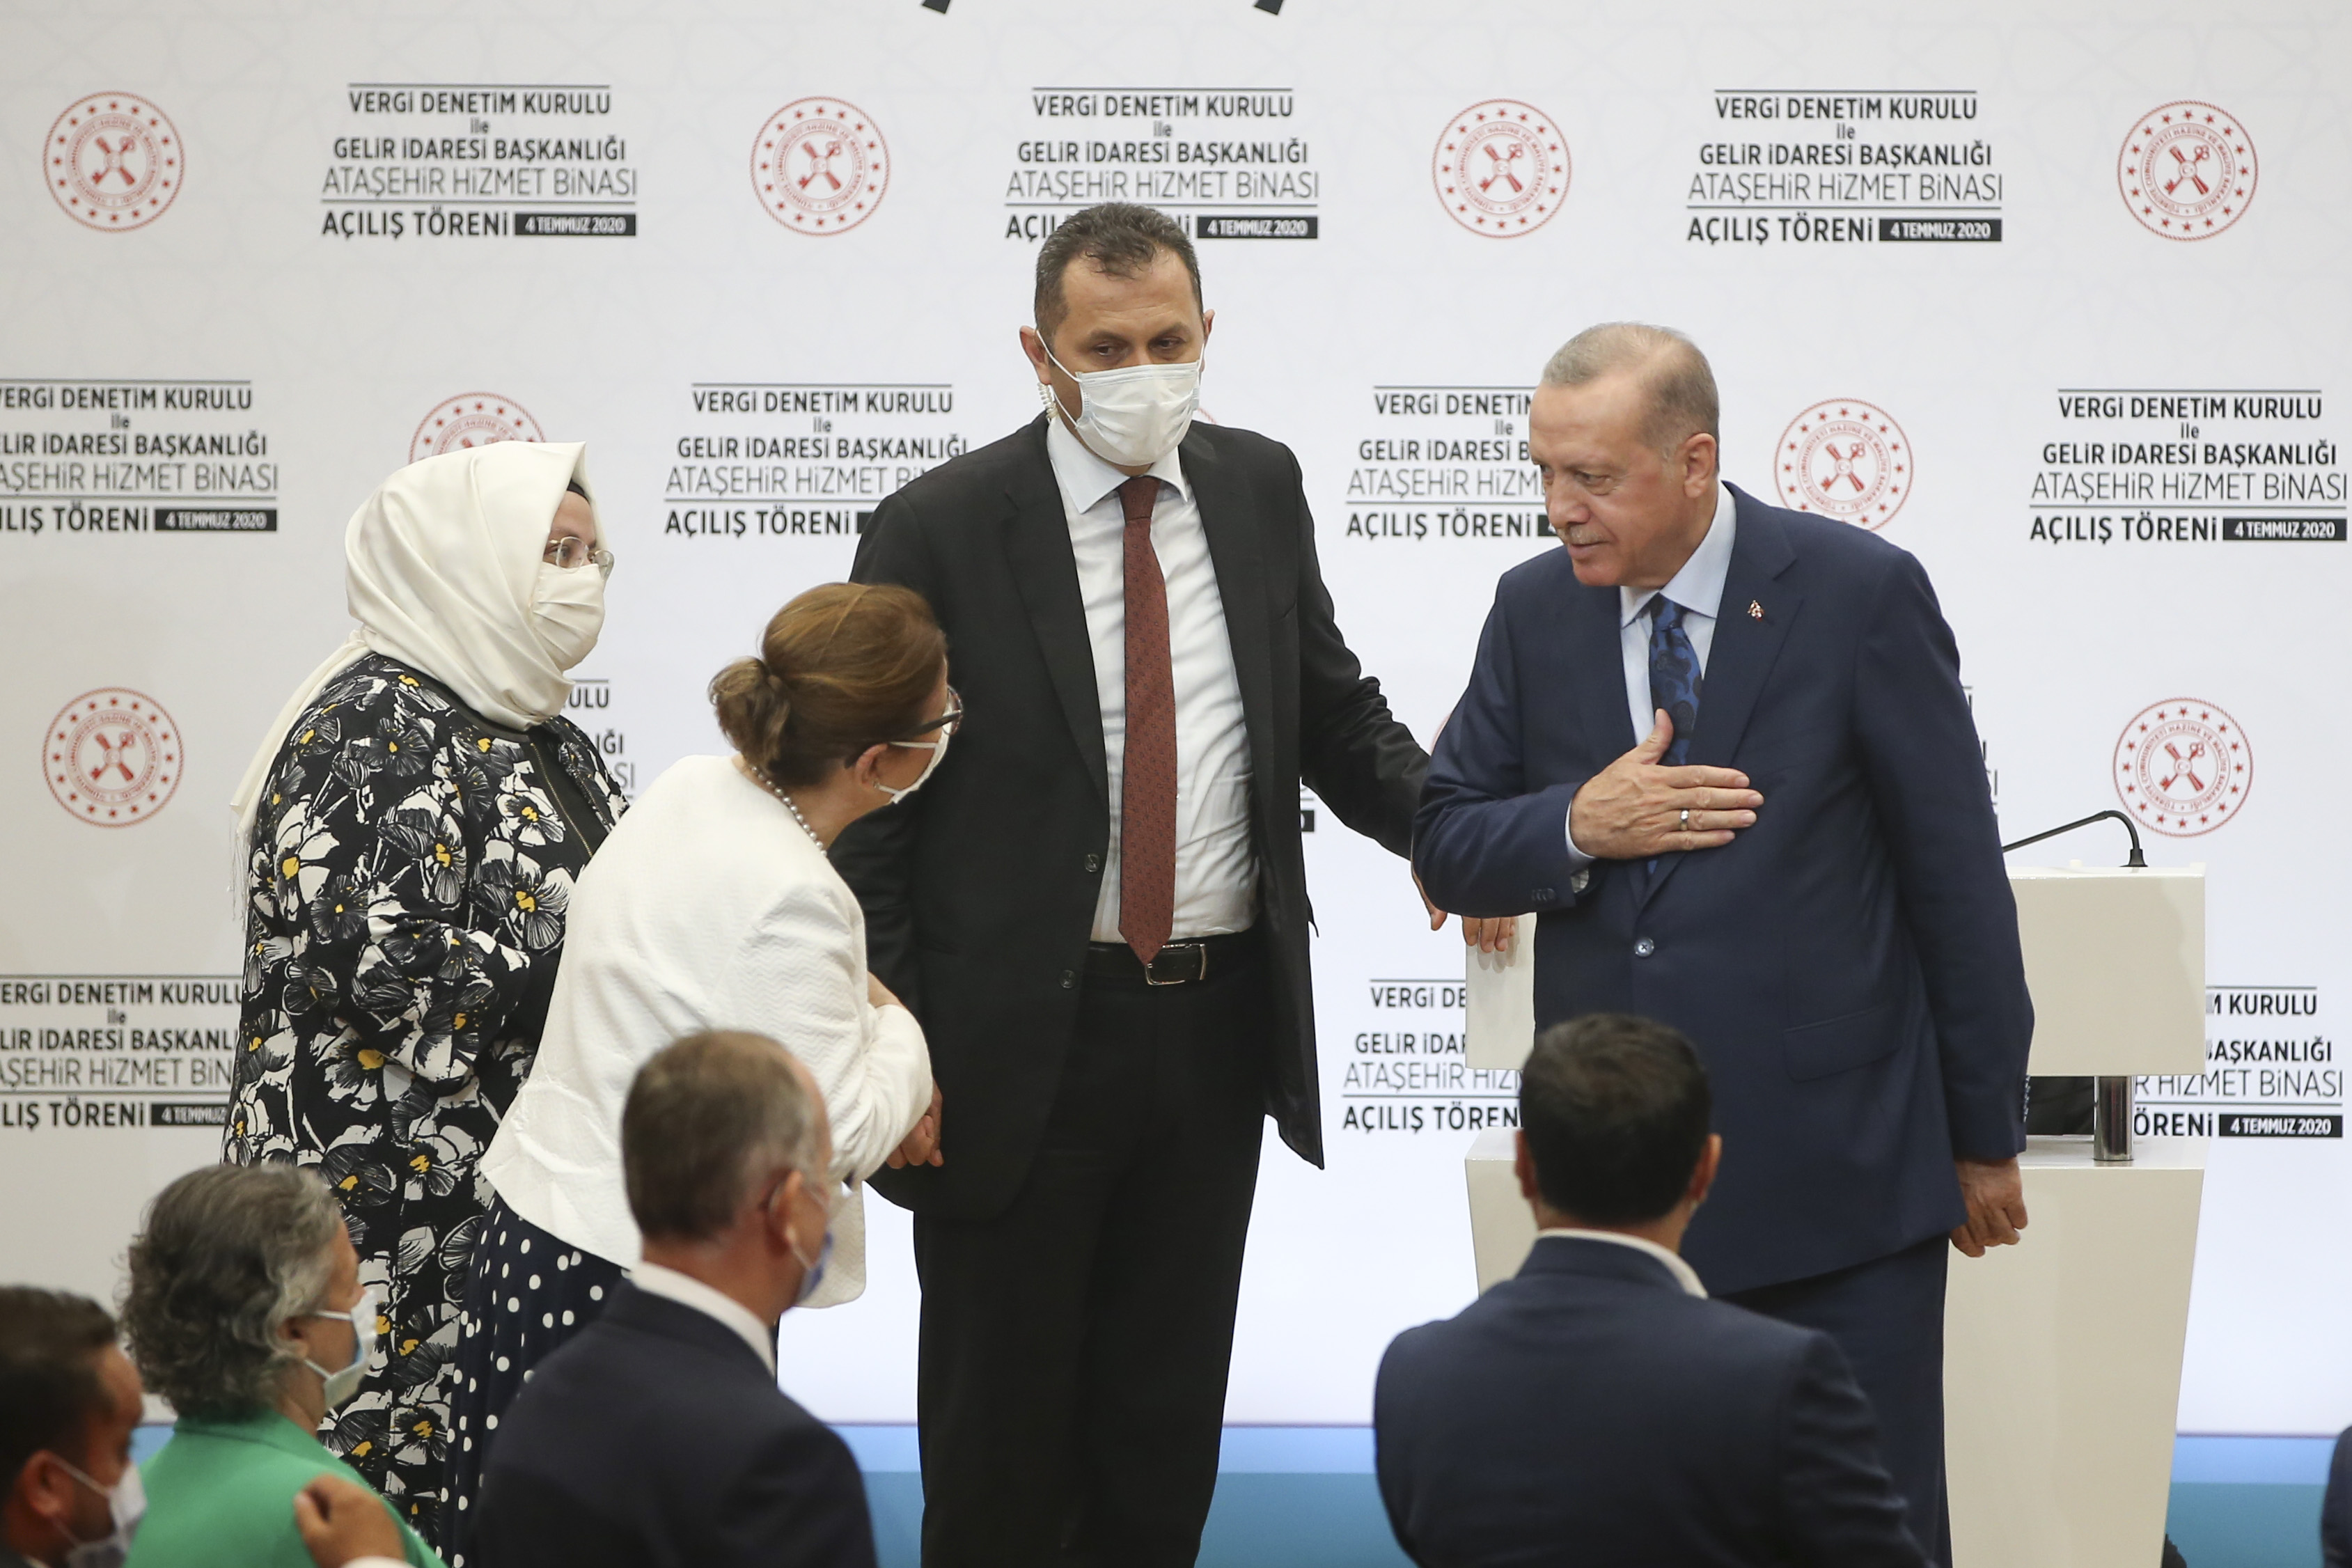 President Erdoğan attended the opening ceremony of the Ministry of Treasury and Finance's Ataşehir Service Building